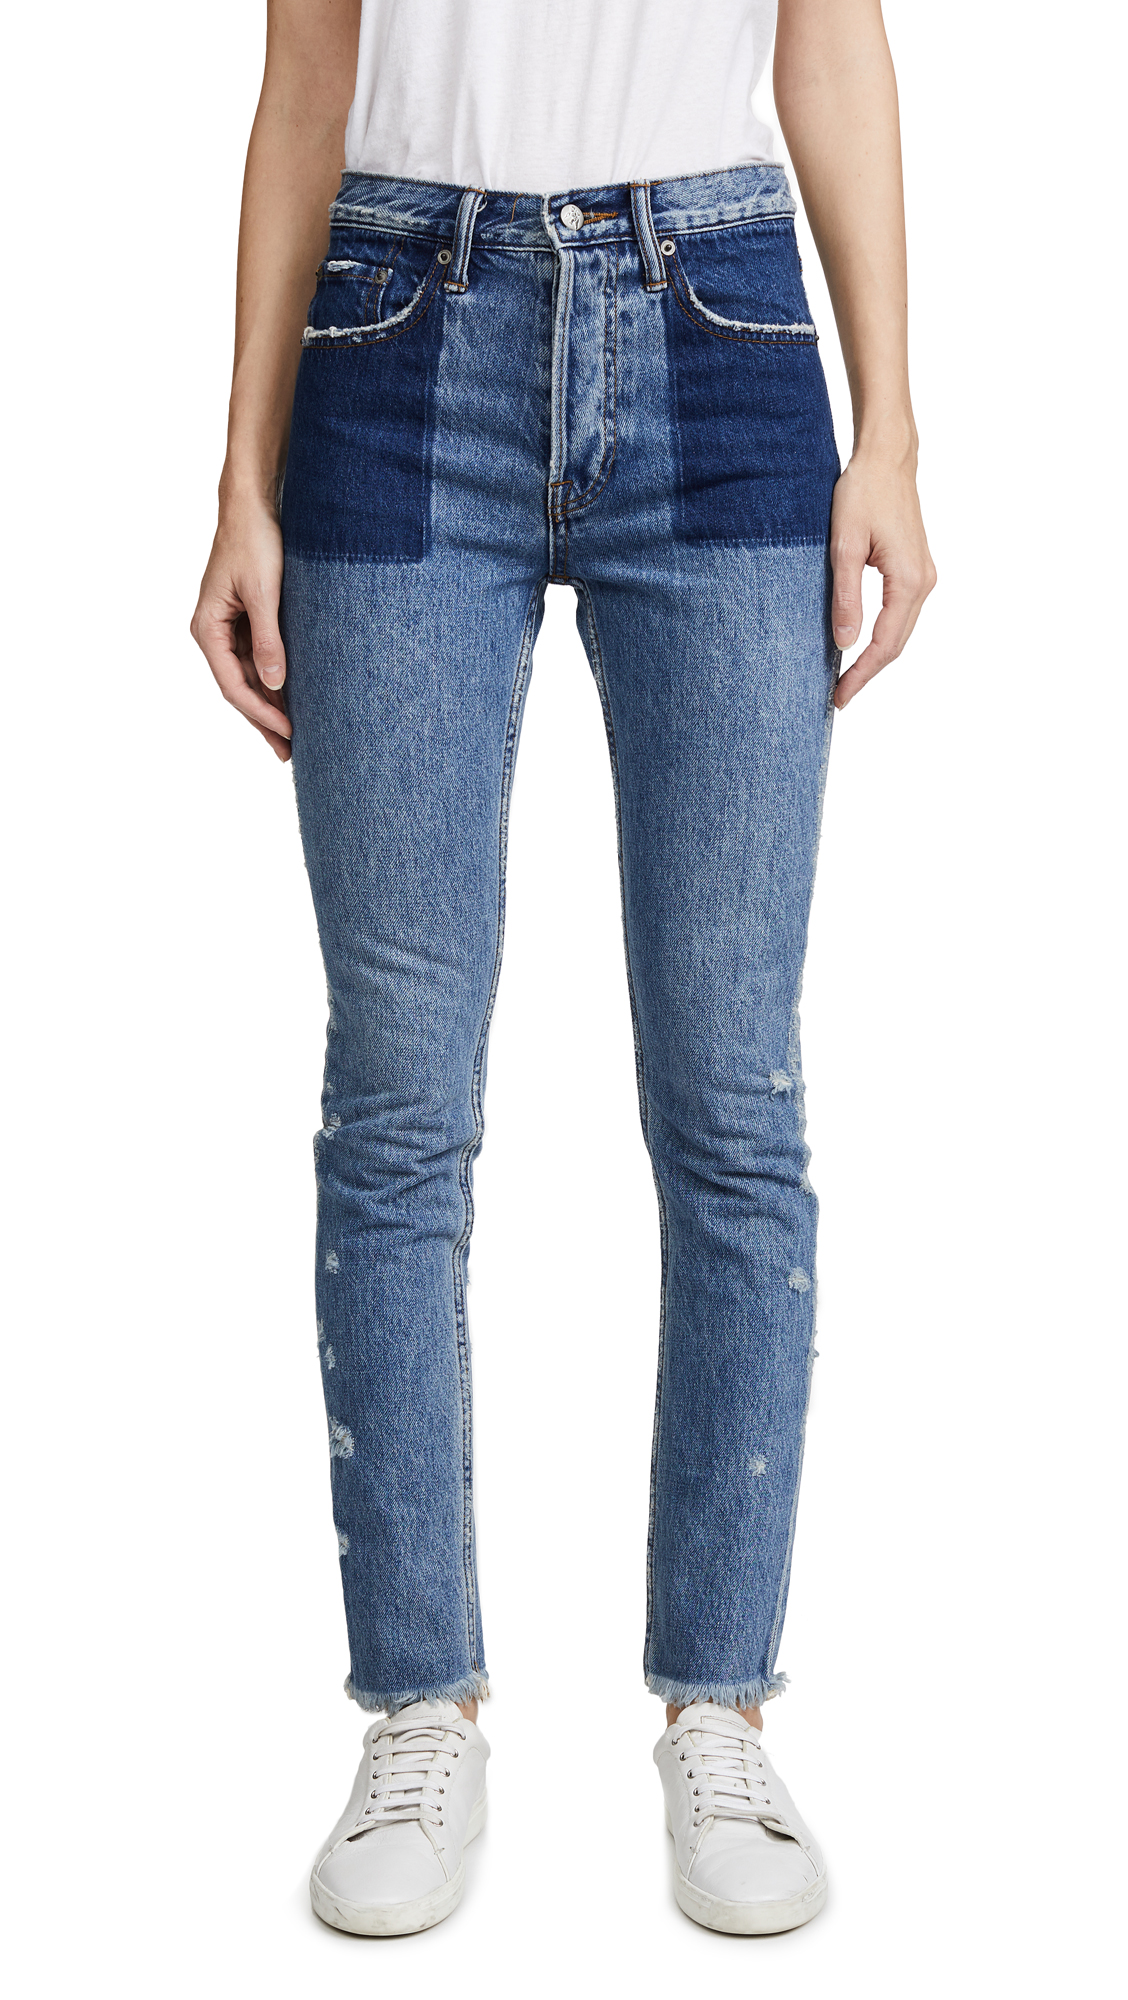 PRPS Amx Jeans with Reverse Tone Pockets